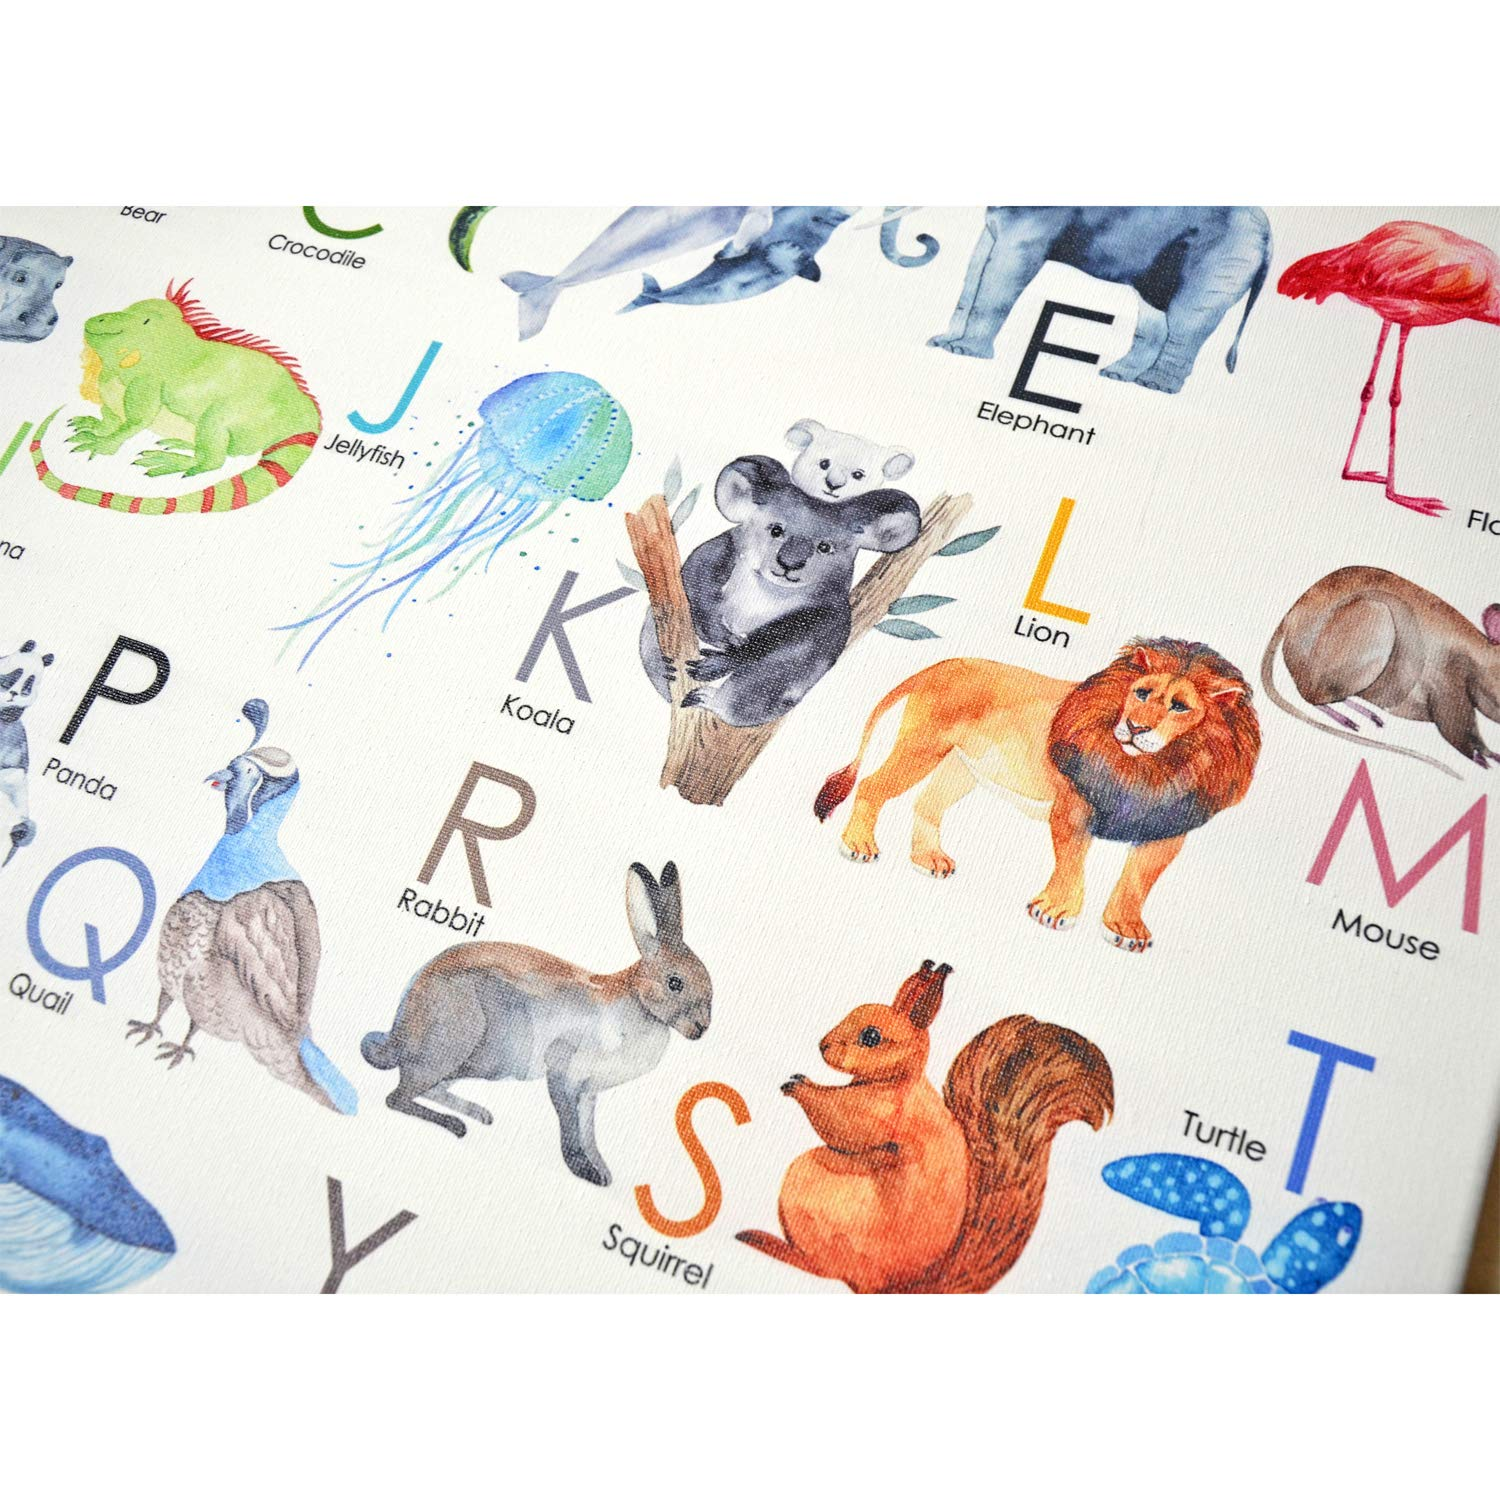 Texture of Dreams Kids Alphabet Letters with Pictures on Large Canvas Wall Art, Preschool Learning Educational Posters, Alphabet Zoo Animal ABC for Kids Toddlers, Baby Nursery Art Prints 24 x 36